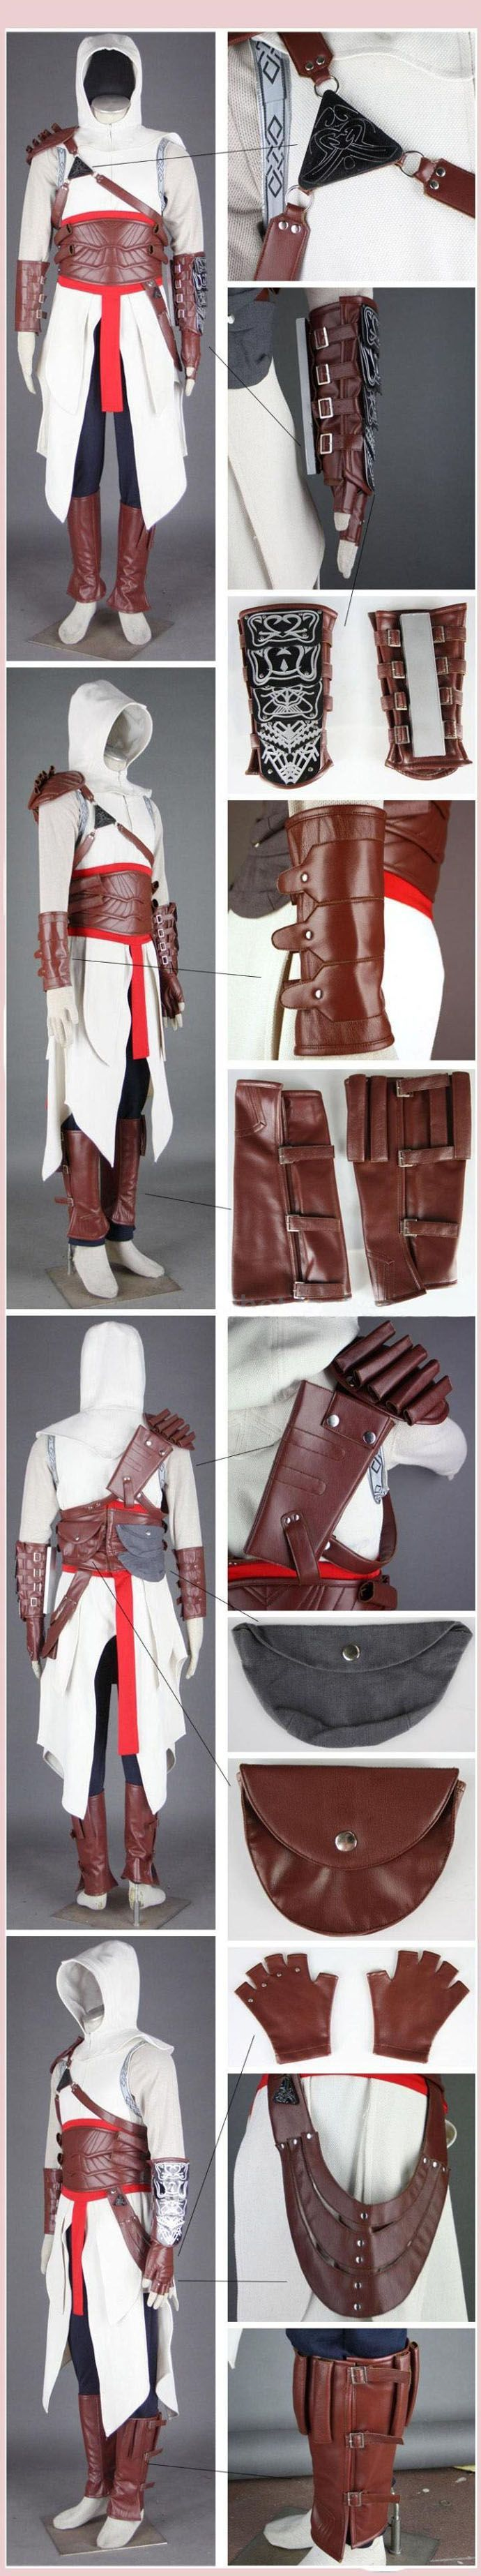 Assassin's Creed Costume Pattern | ... : Assassin's Creed 2 Brotherhood Altair Assassin Cosplay Costume - COSPLAY IS BAEEE!!! Tap the pin now to grab yourself some BAE Cosplay leggings and shirts! From super hero fitness leggings, super hero fitness shirts, and so much more that wil make you say YASSS!!!